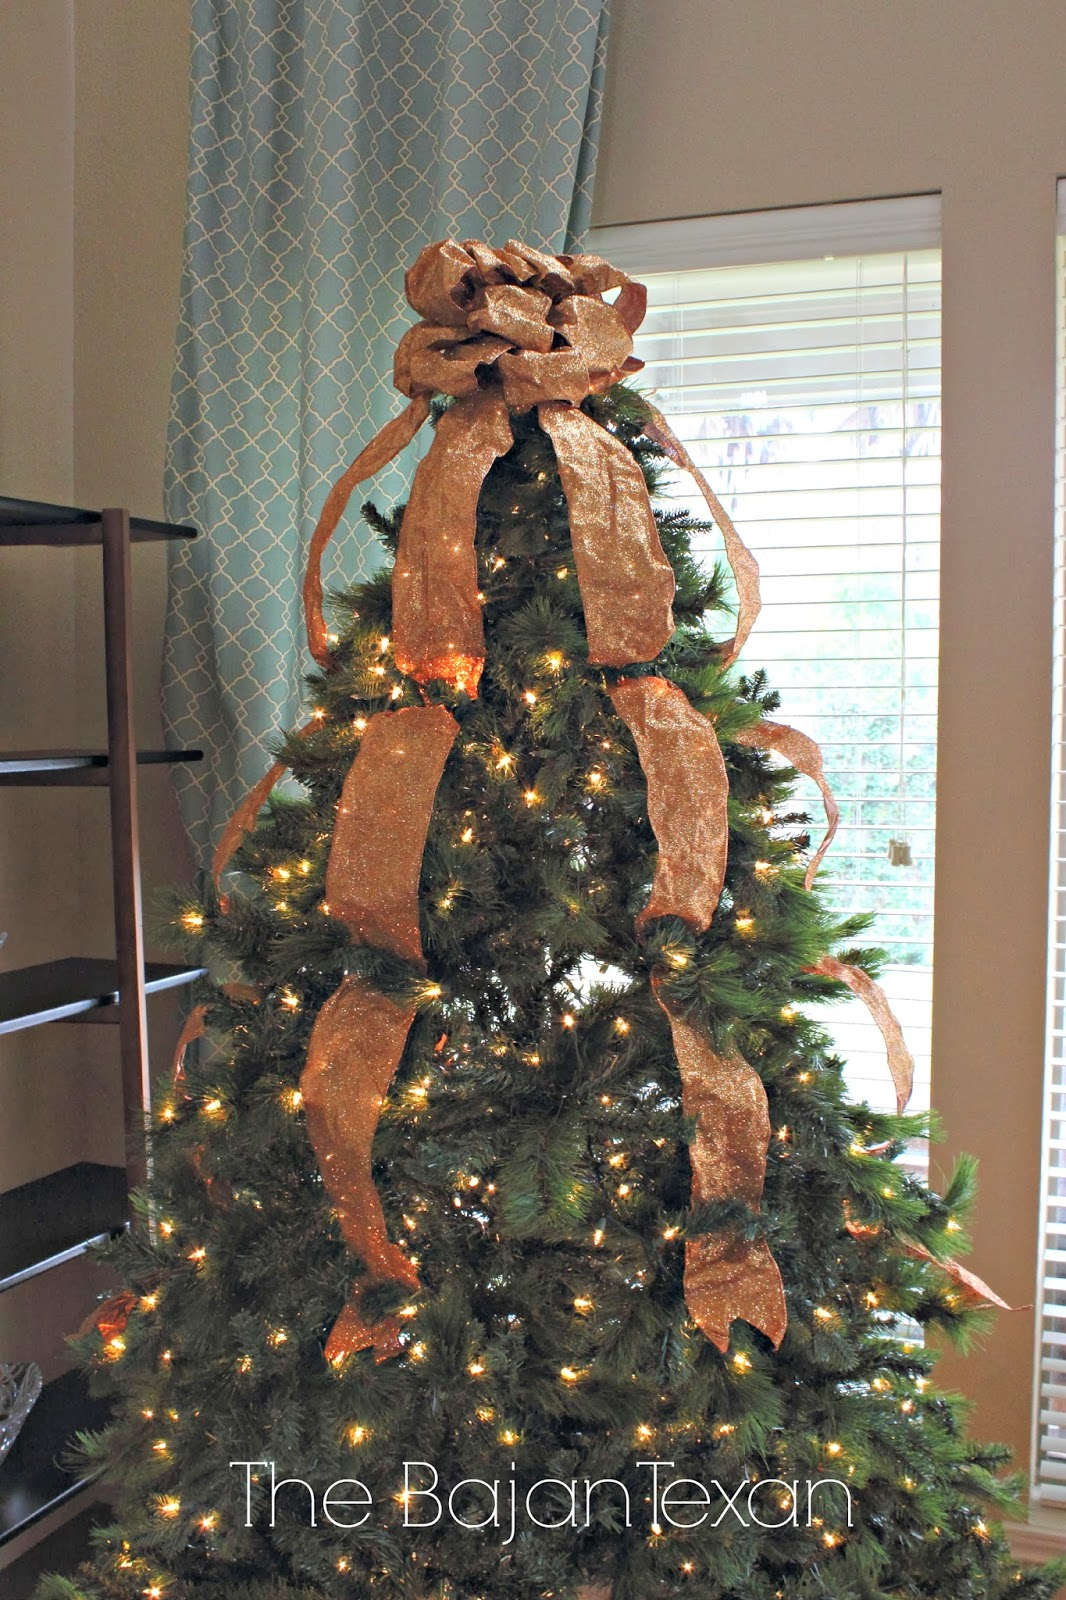 Christmas Tree With Mesh Ribbon Images.How To Decorate A Christmas Tree Holiday Series 5 The